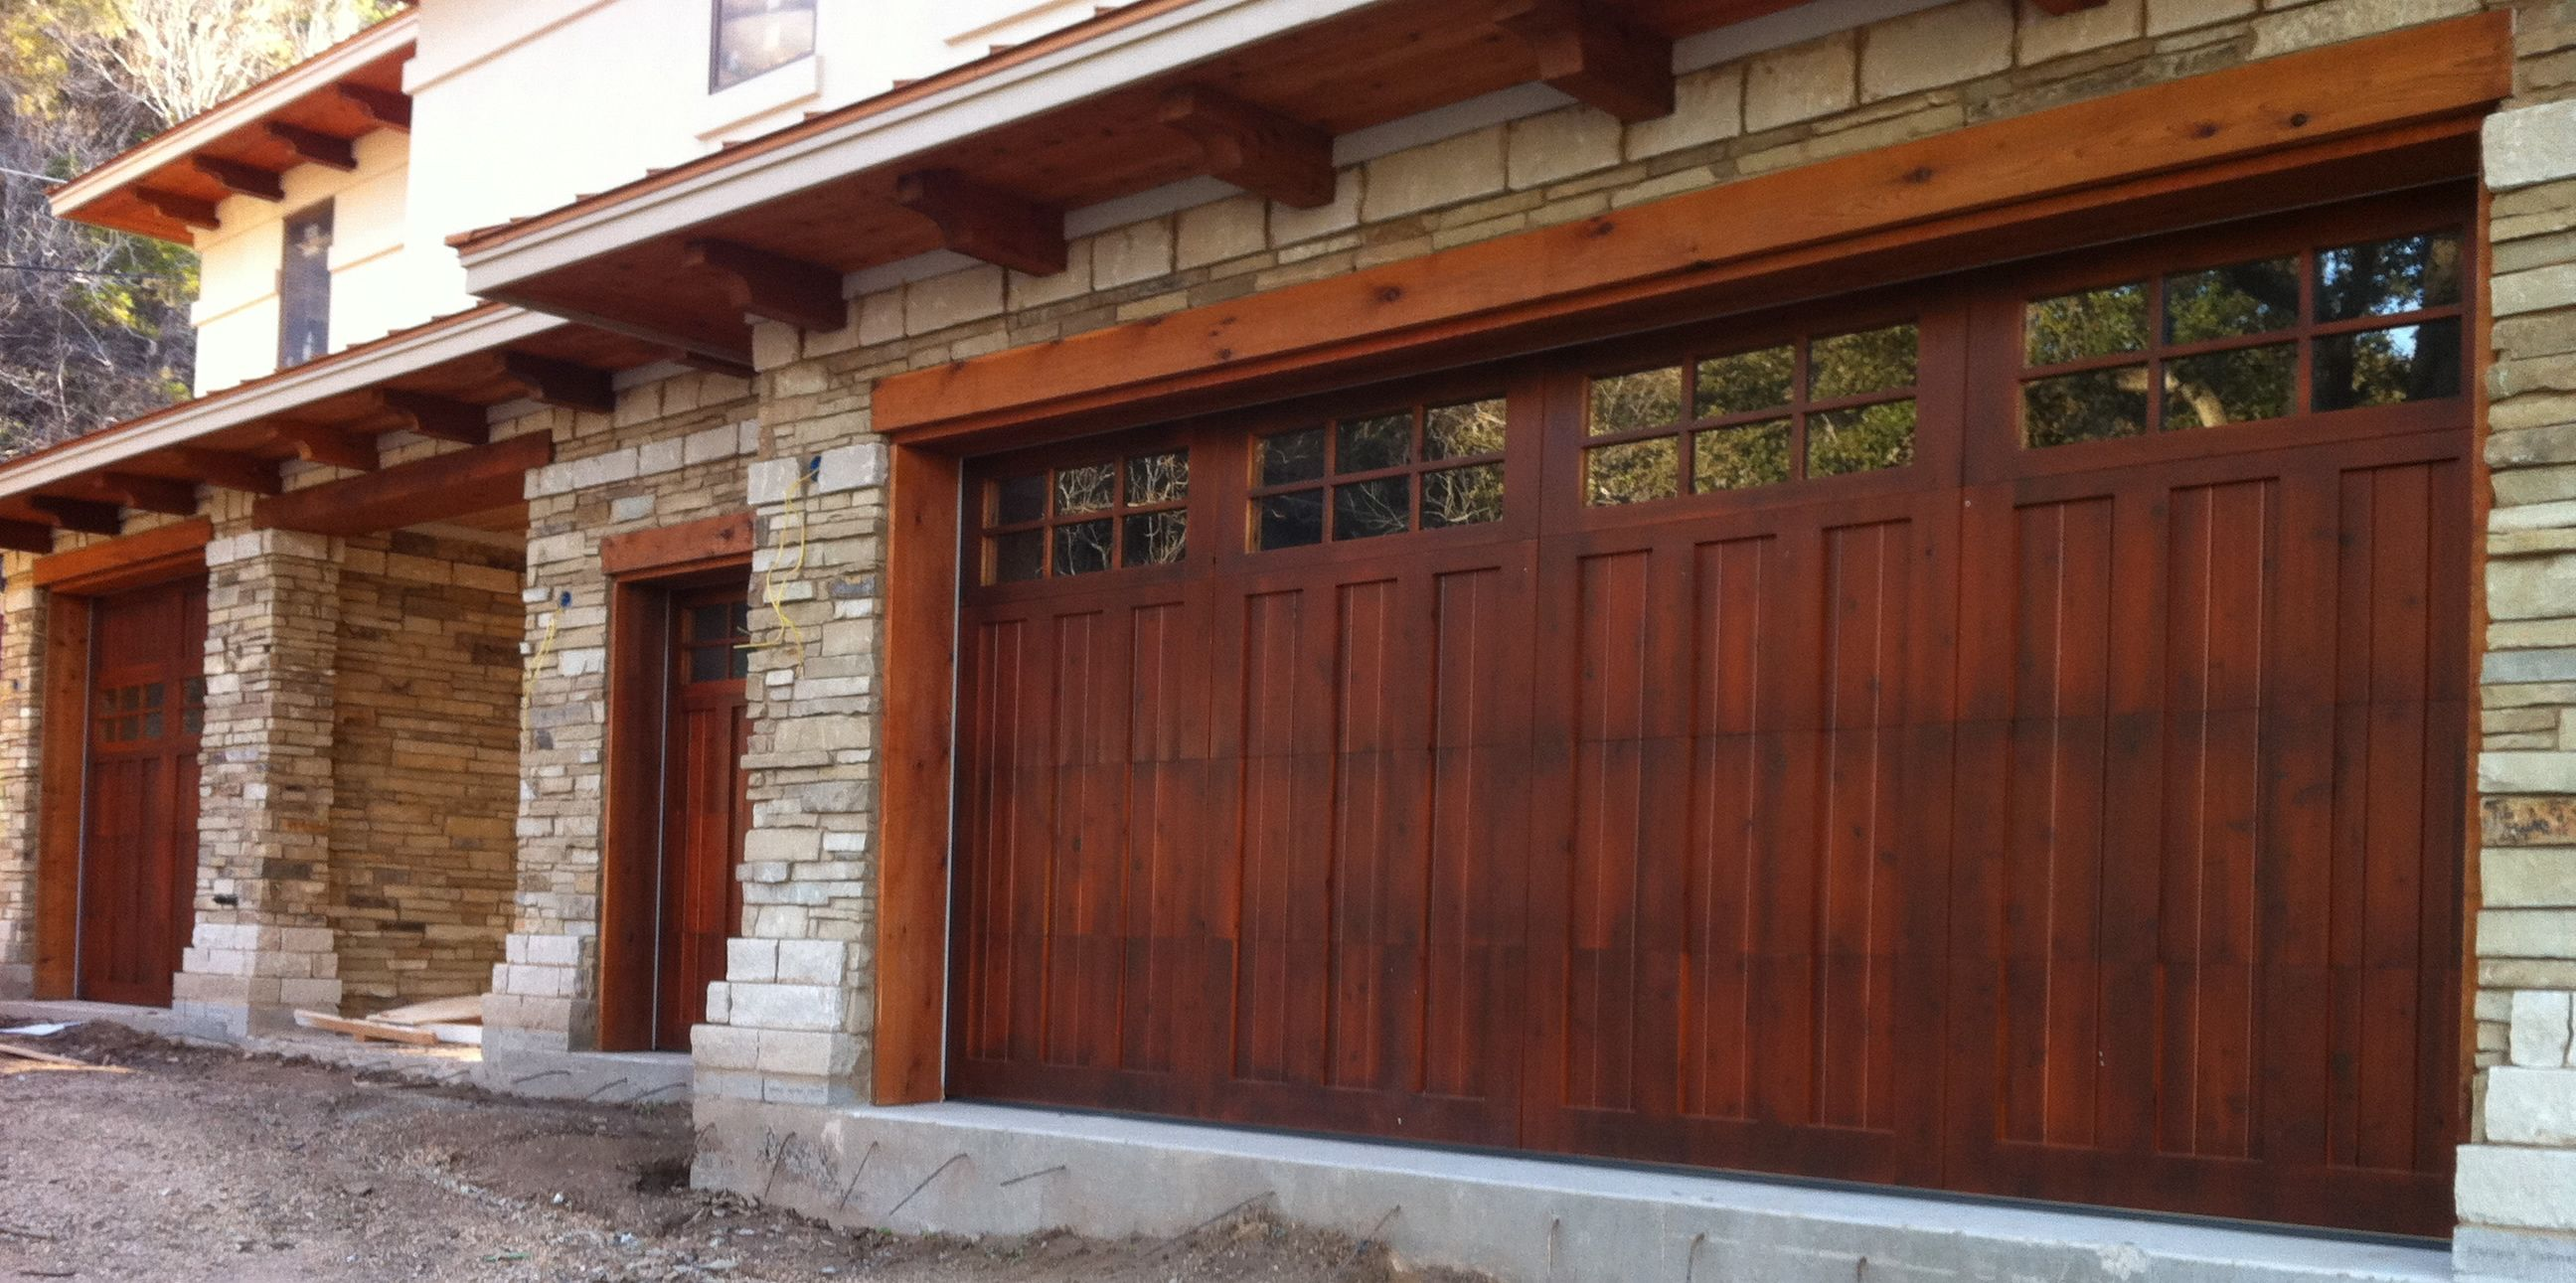 Wood doortimelessconstruction sanctuary pinterest garage latest garage door openers and accessories for steel and glass garage doors are provided by us with installation and repair services rubansaba